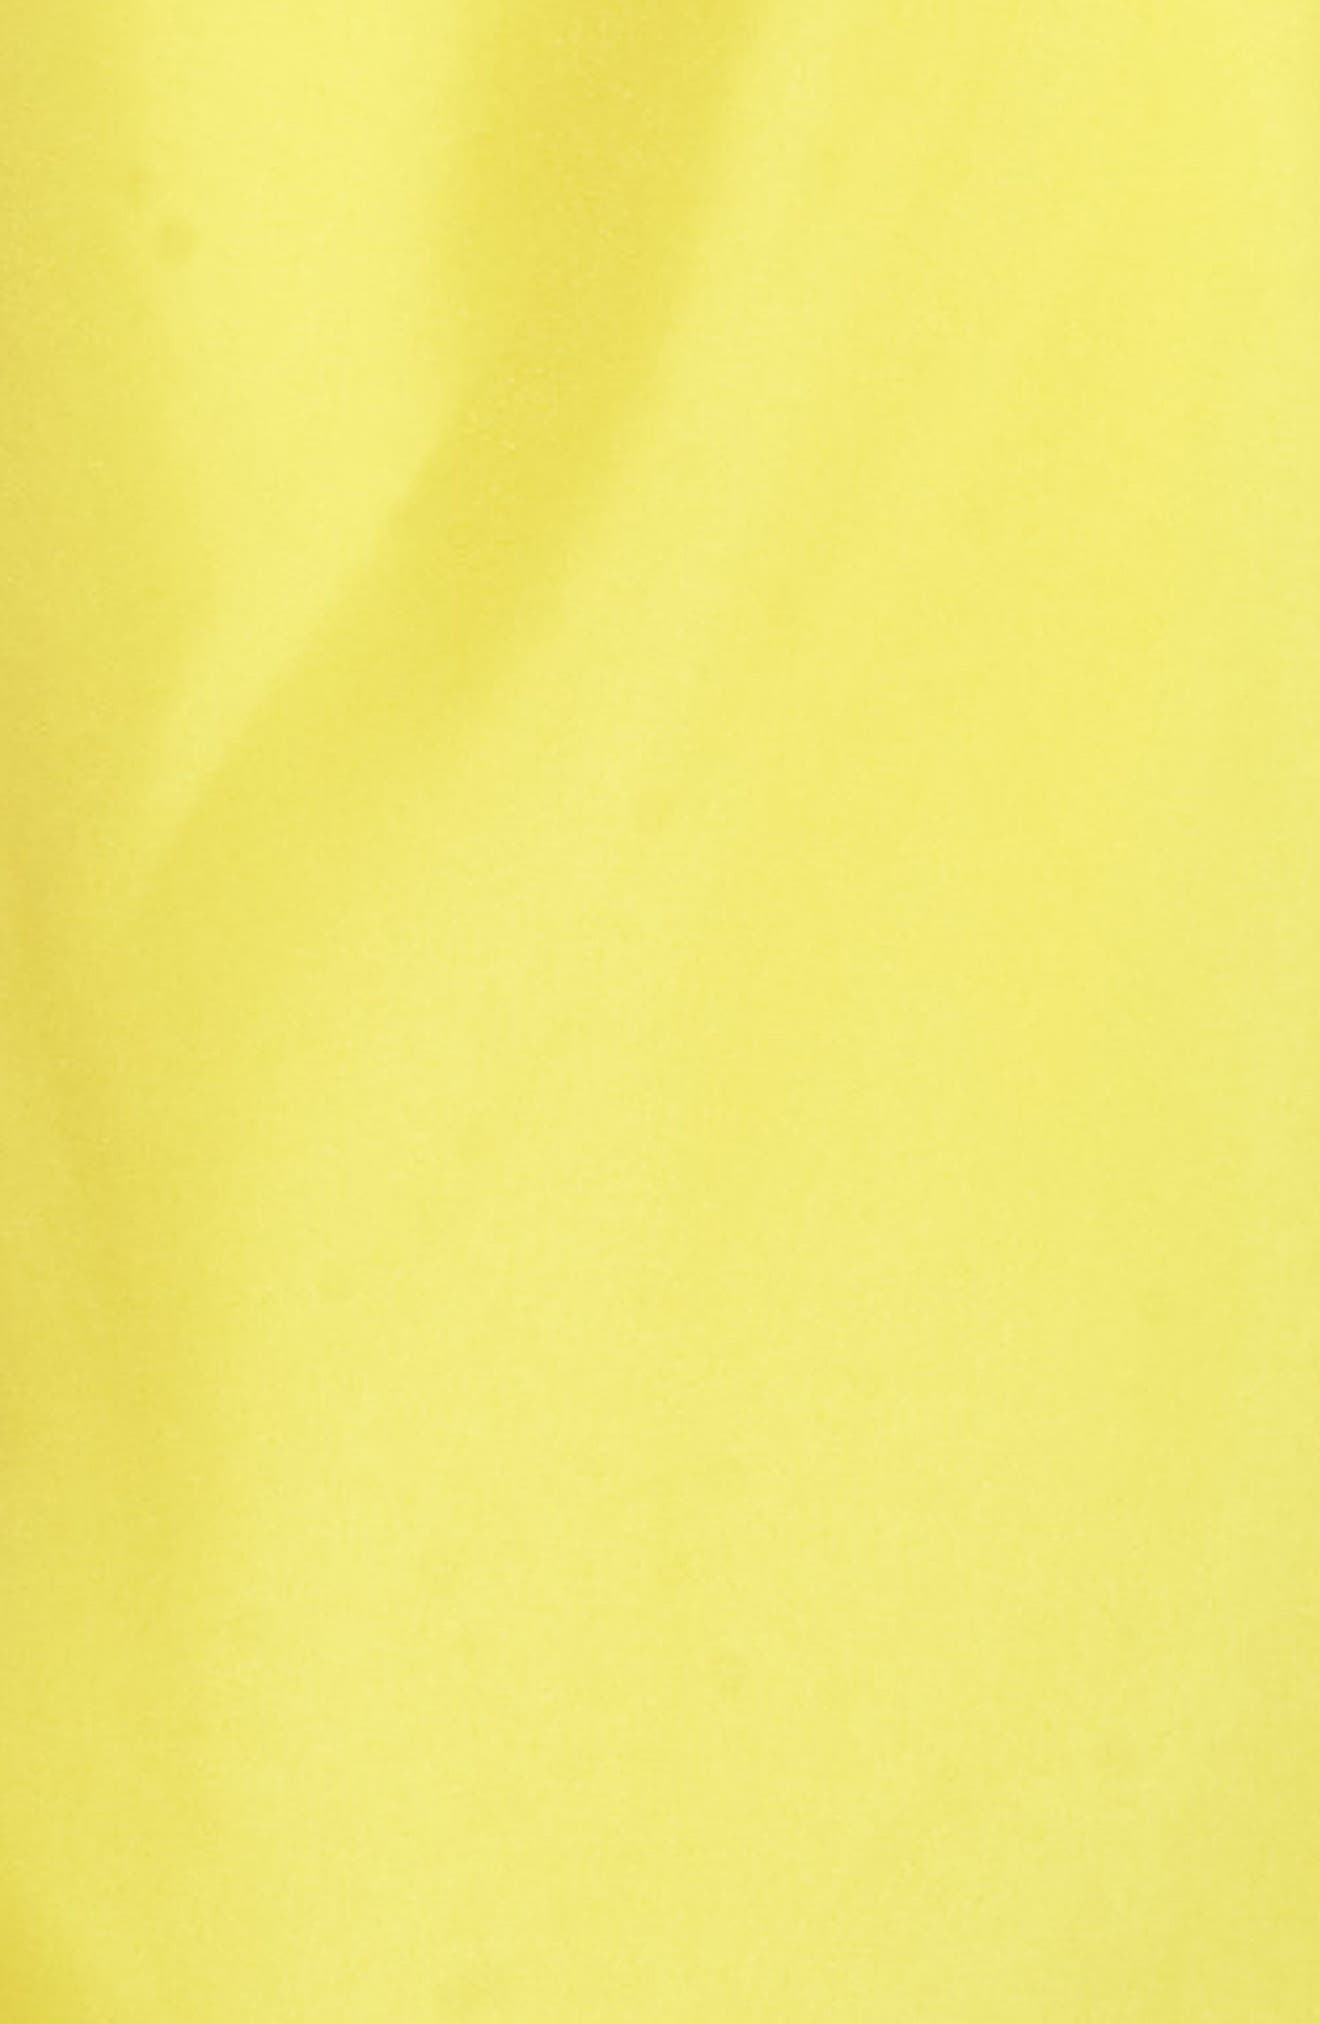 Sprint Vision Shorts,                             Alternate thumbnail 6, color,                             YELLOW